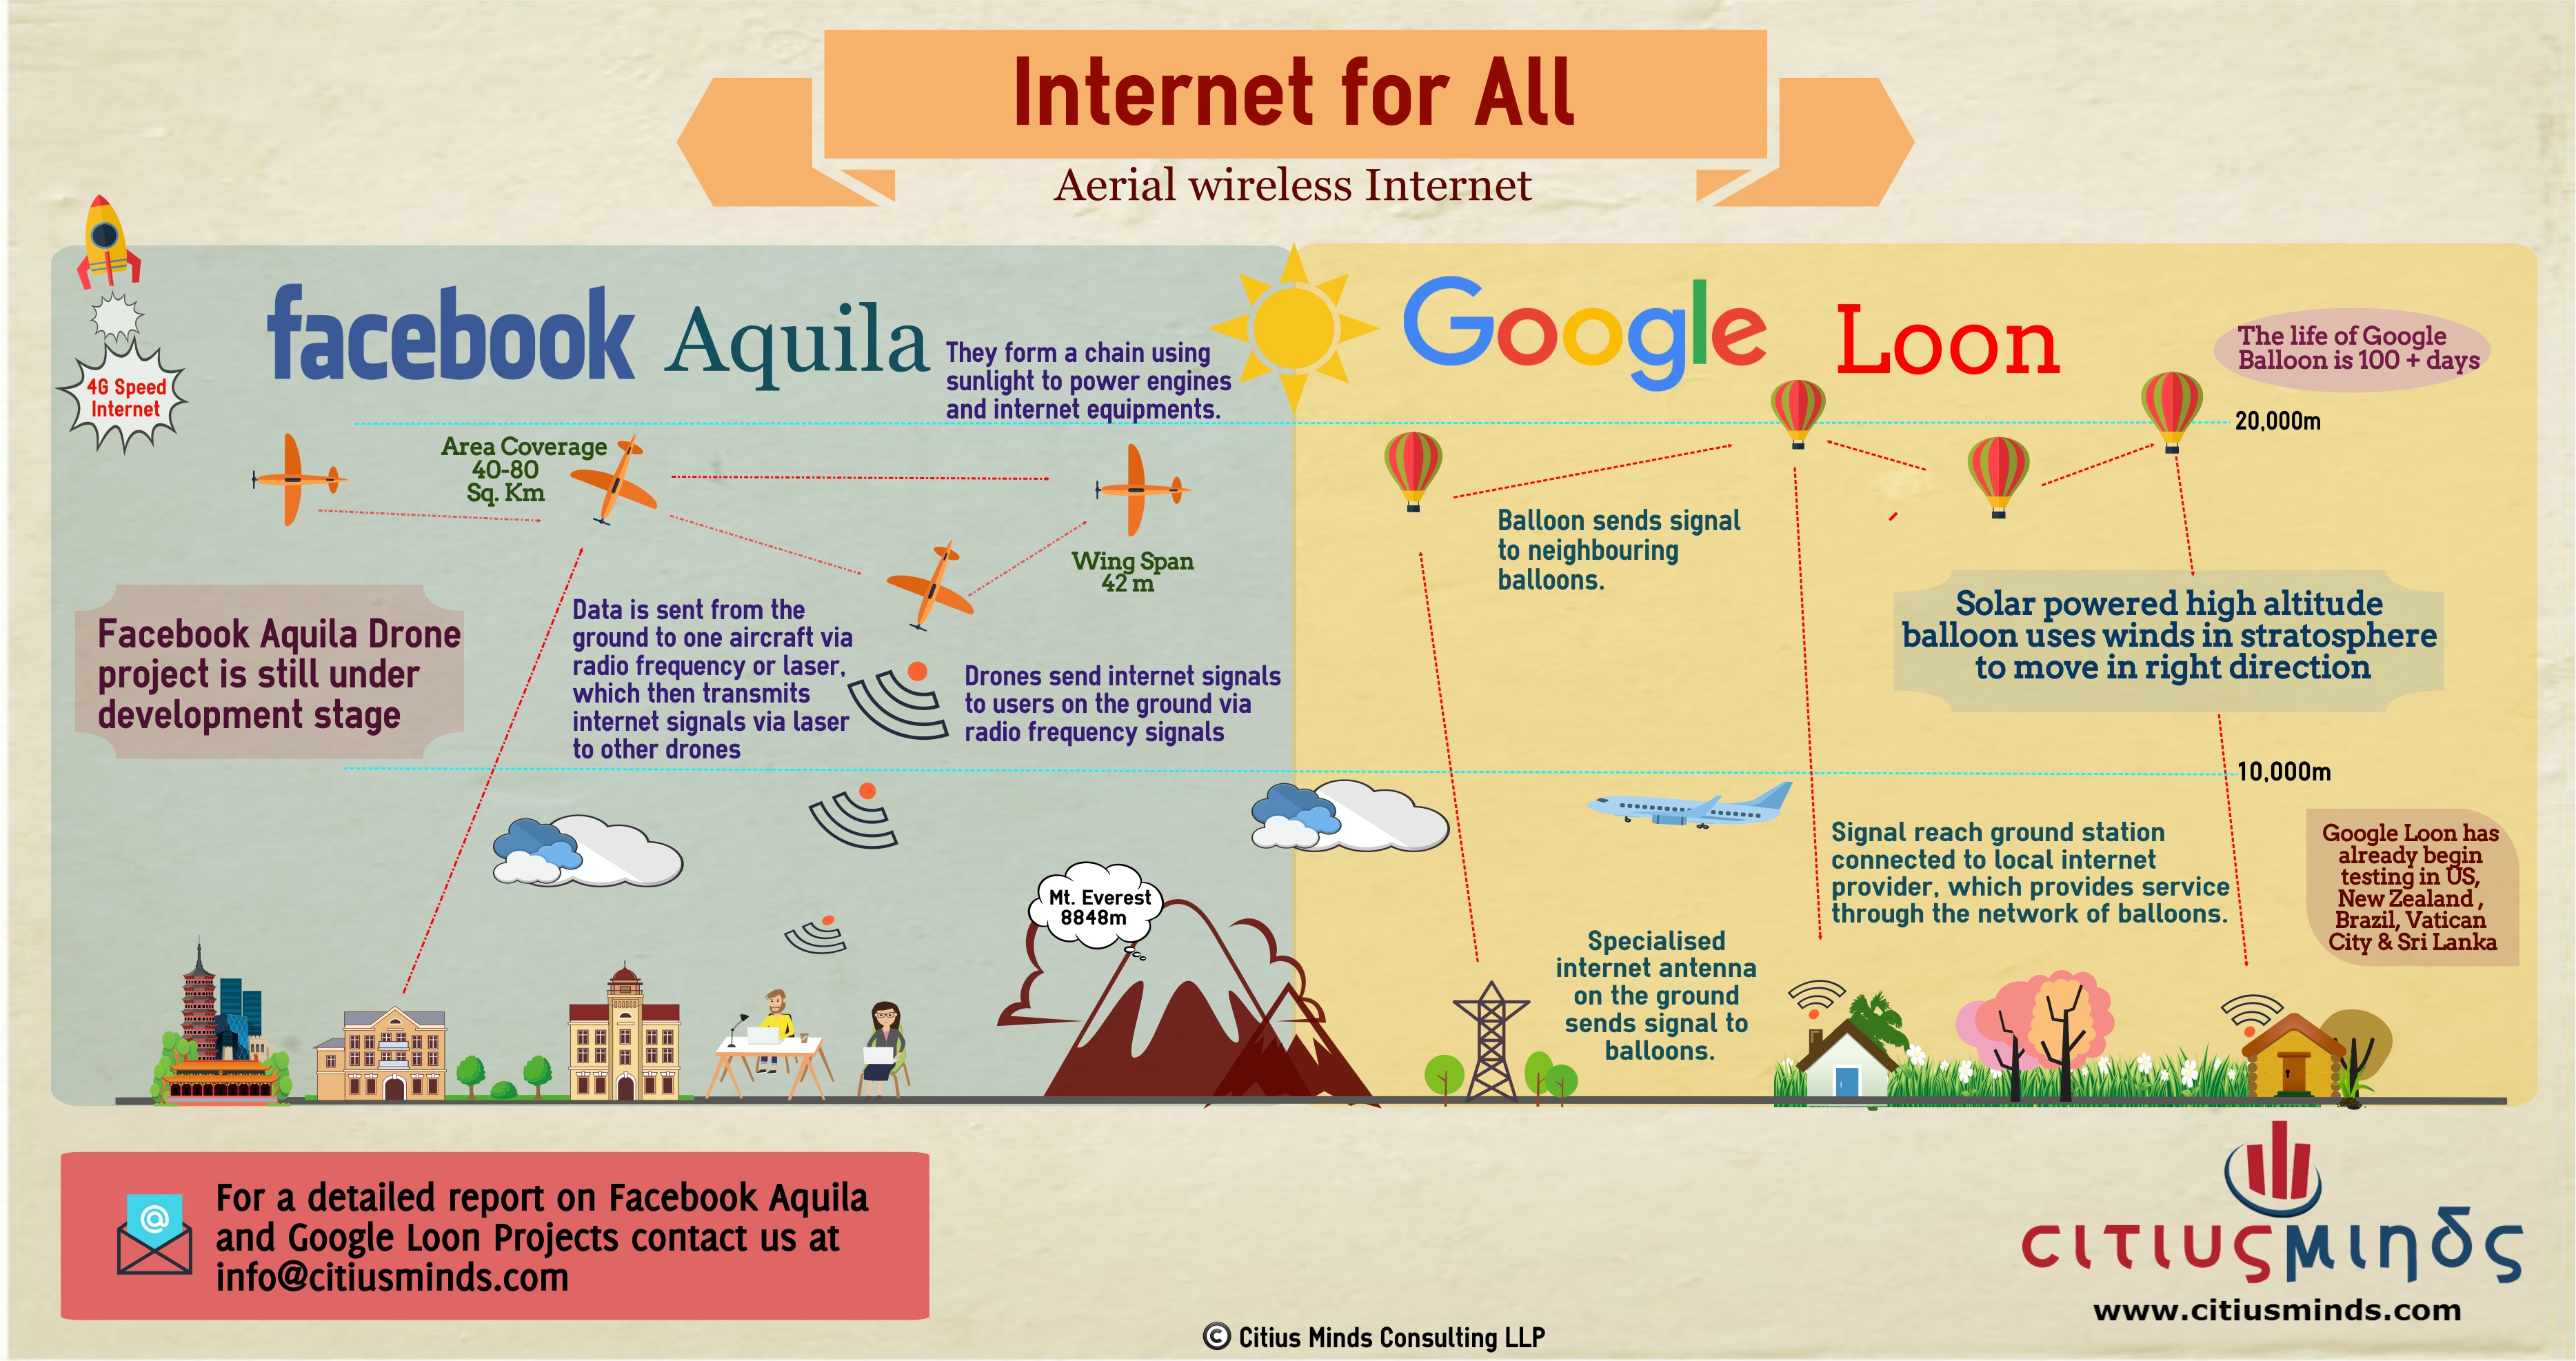 Internet for All infographic